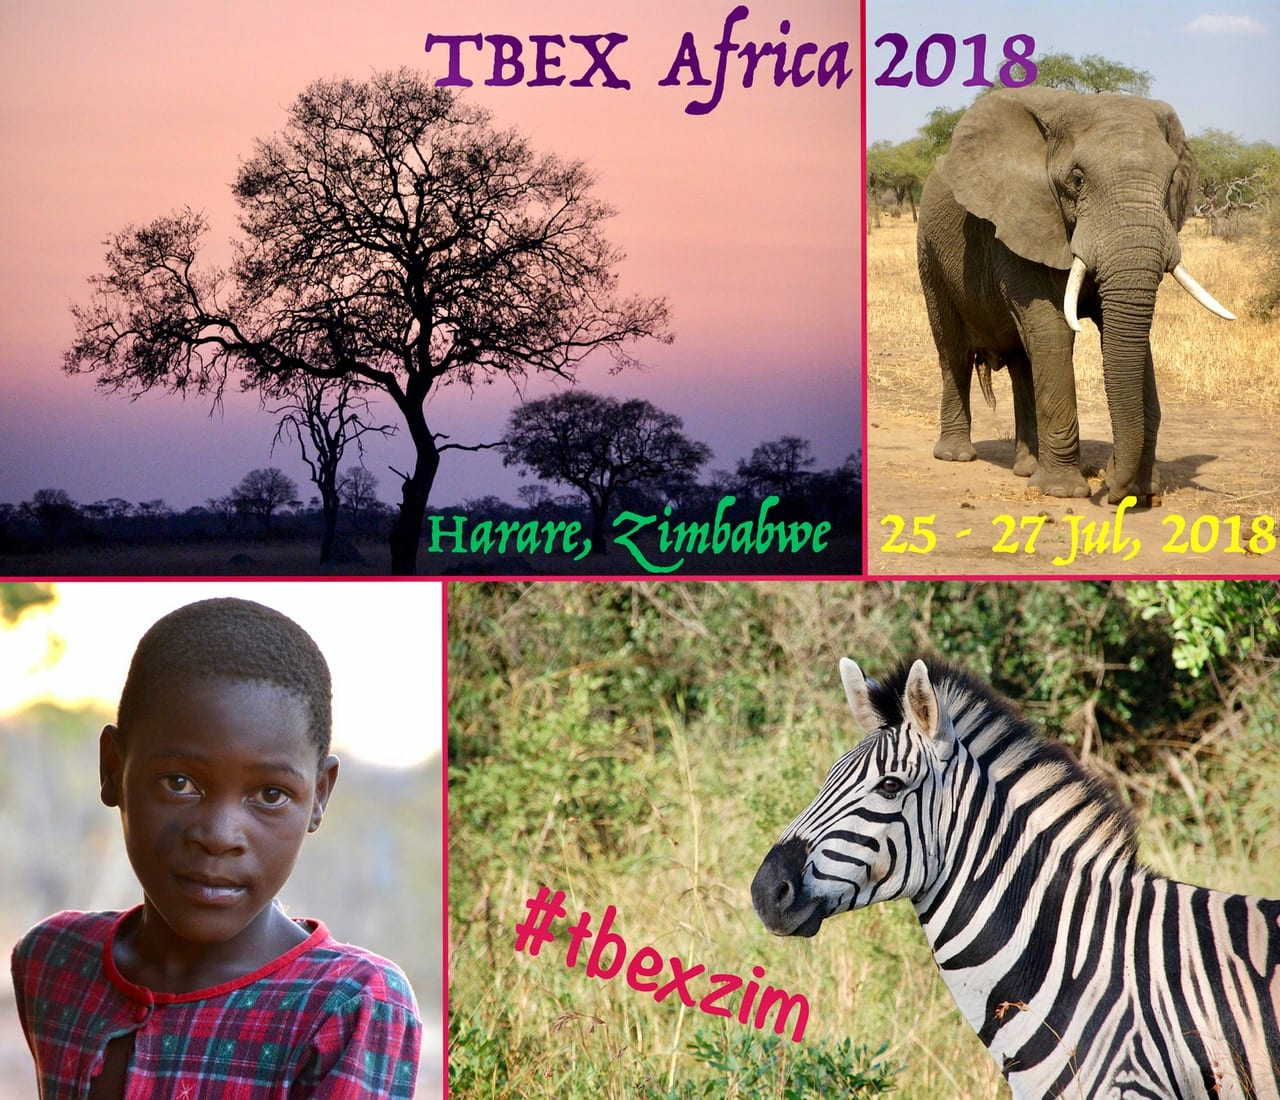 TBEX Africa 2018 in Harare, Zimbabwe